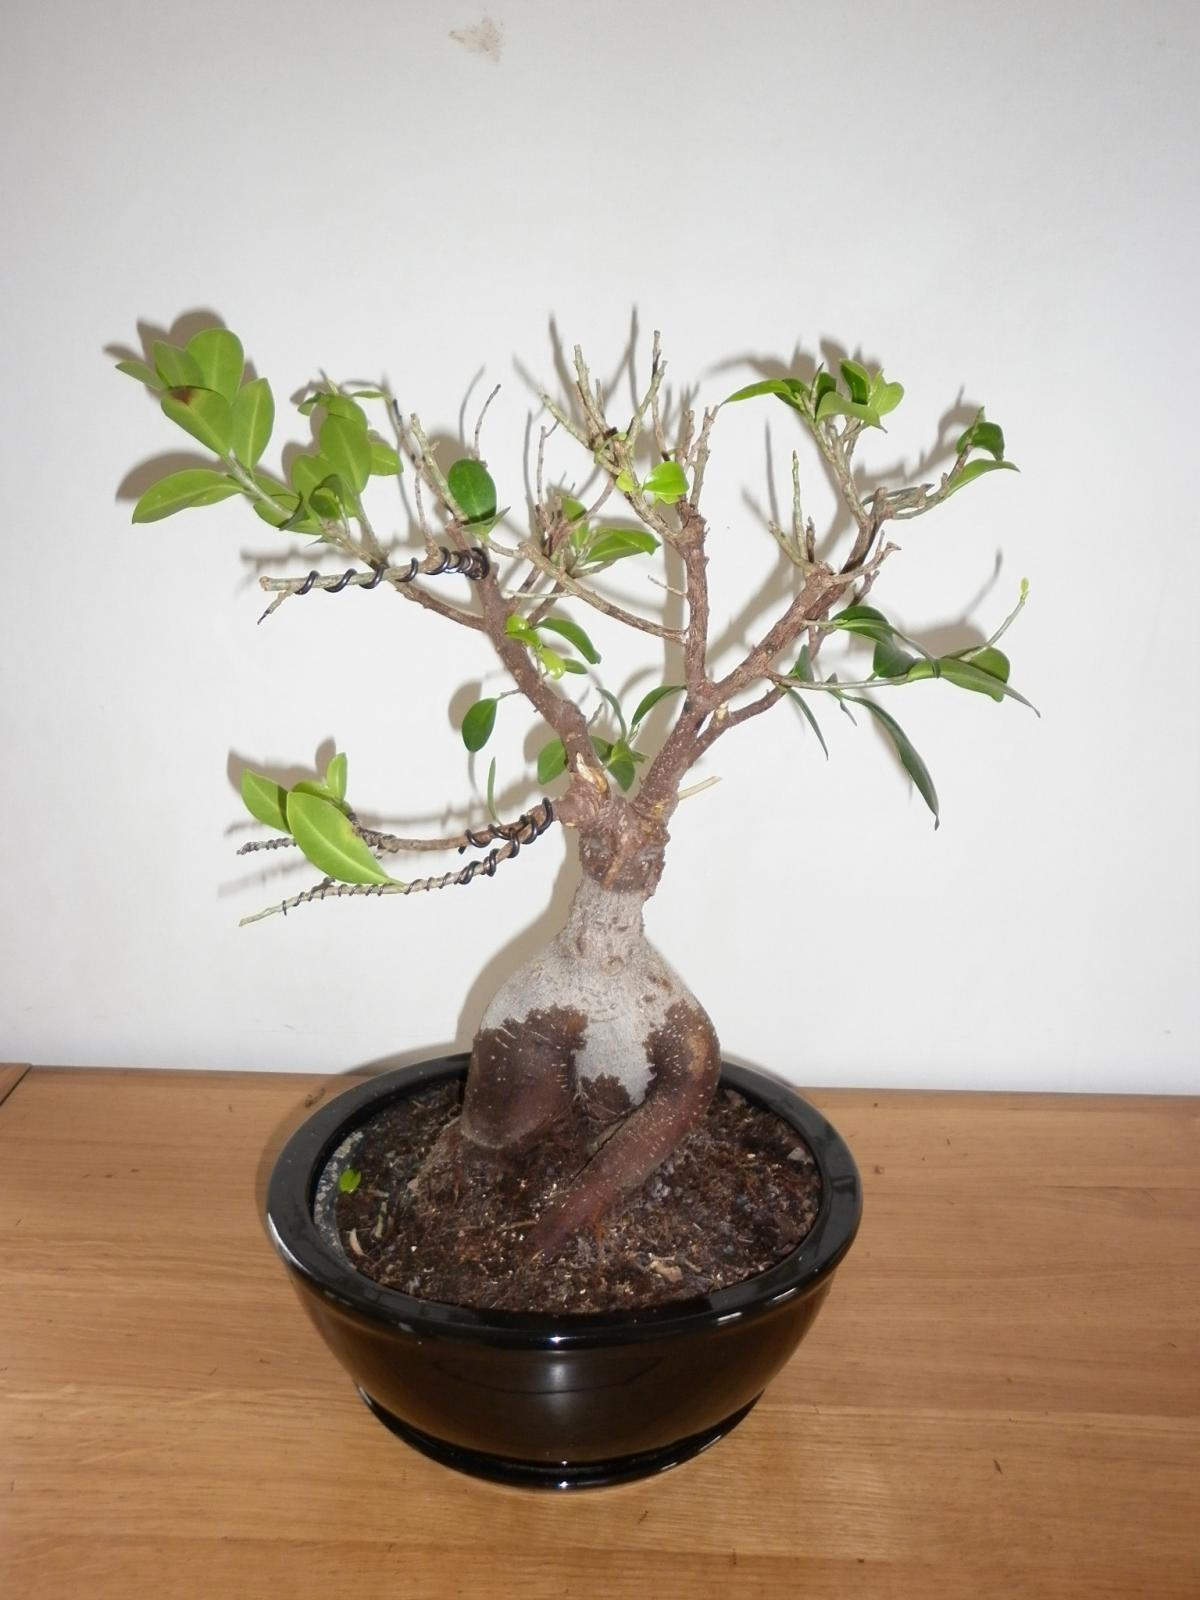 demande conseils mise en forme ficus ginseng mon bonsai ne va pas bien forums parlons bonsai. Black Bedroom Furniture Sets. Home Design Ideas